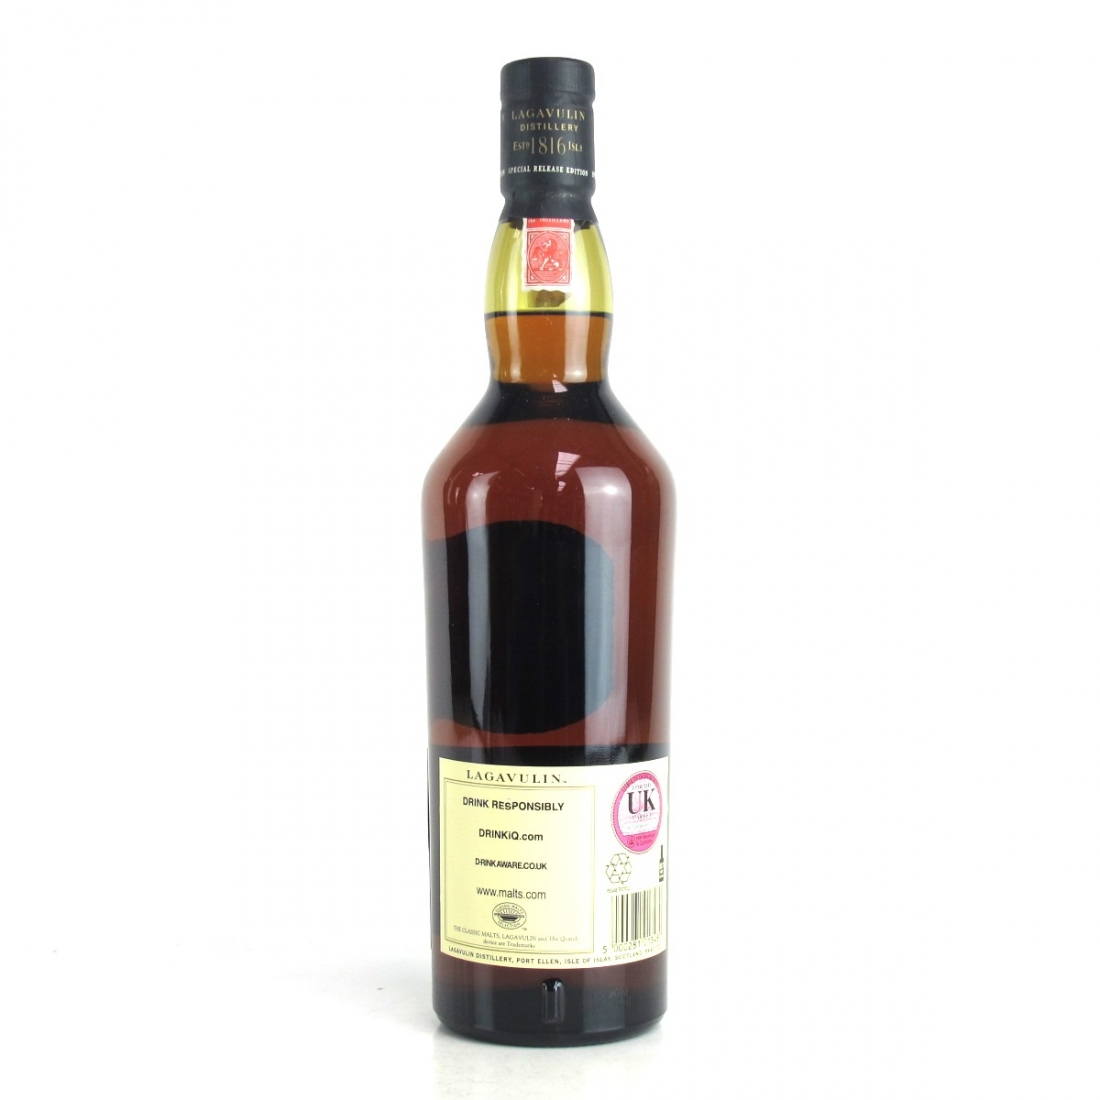 Lagavulin 1995 Distillers Edition